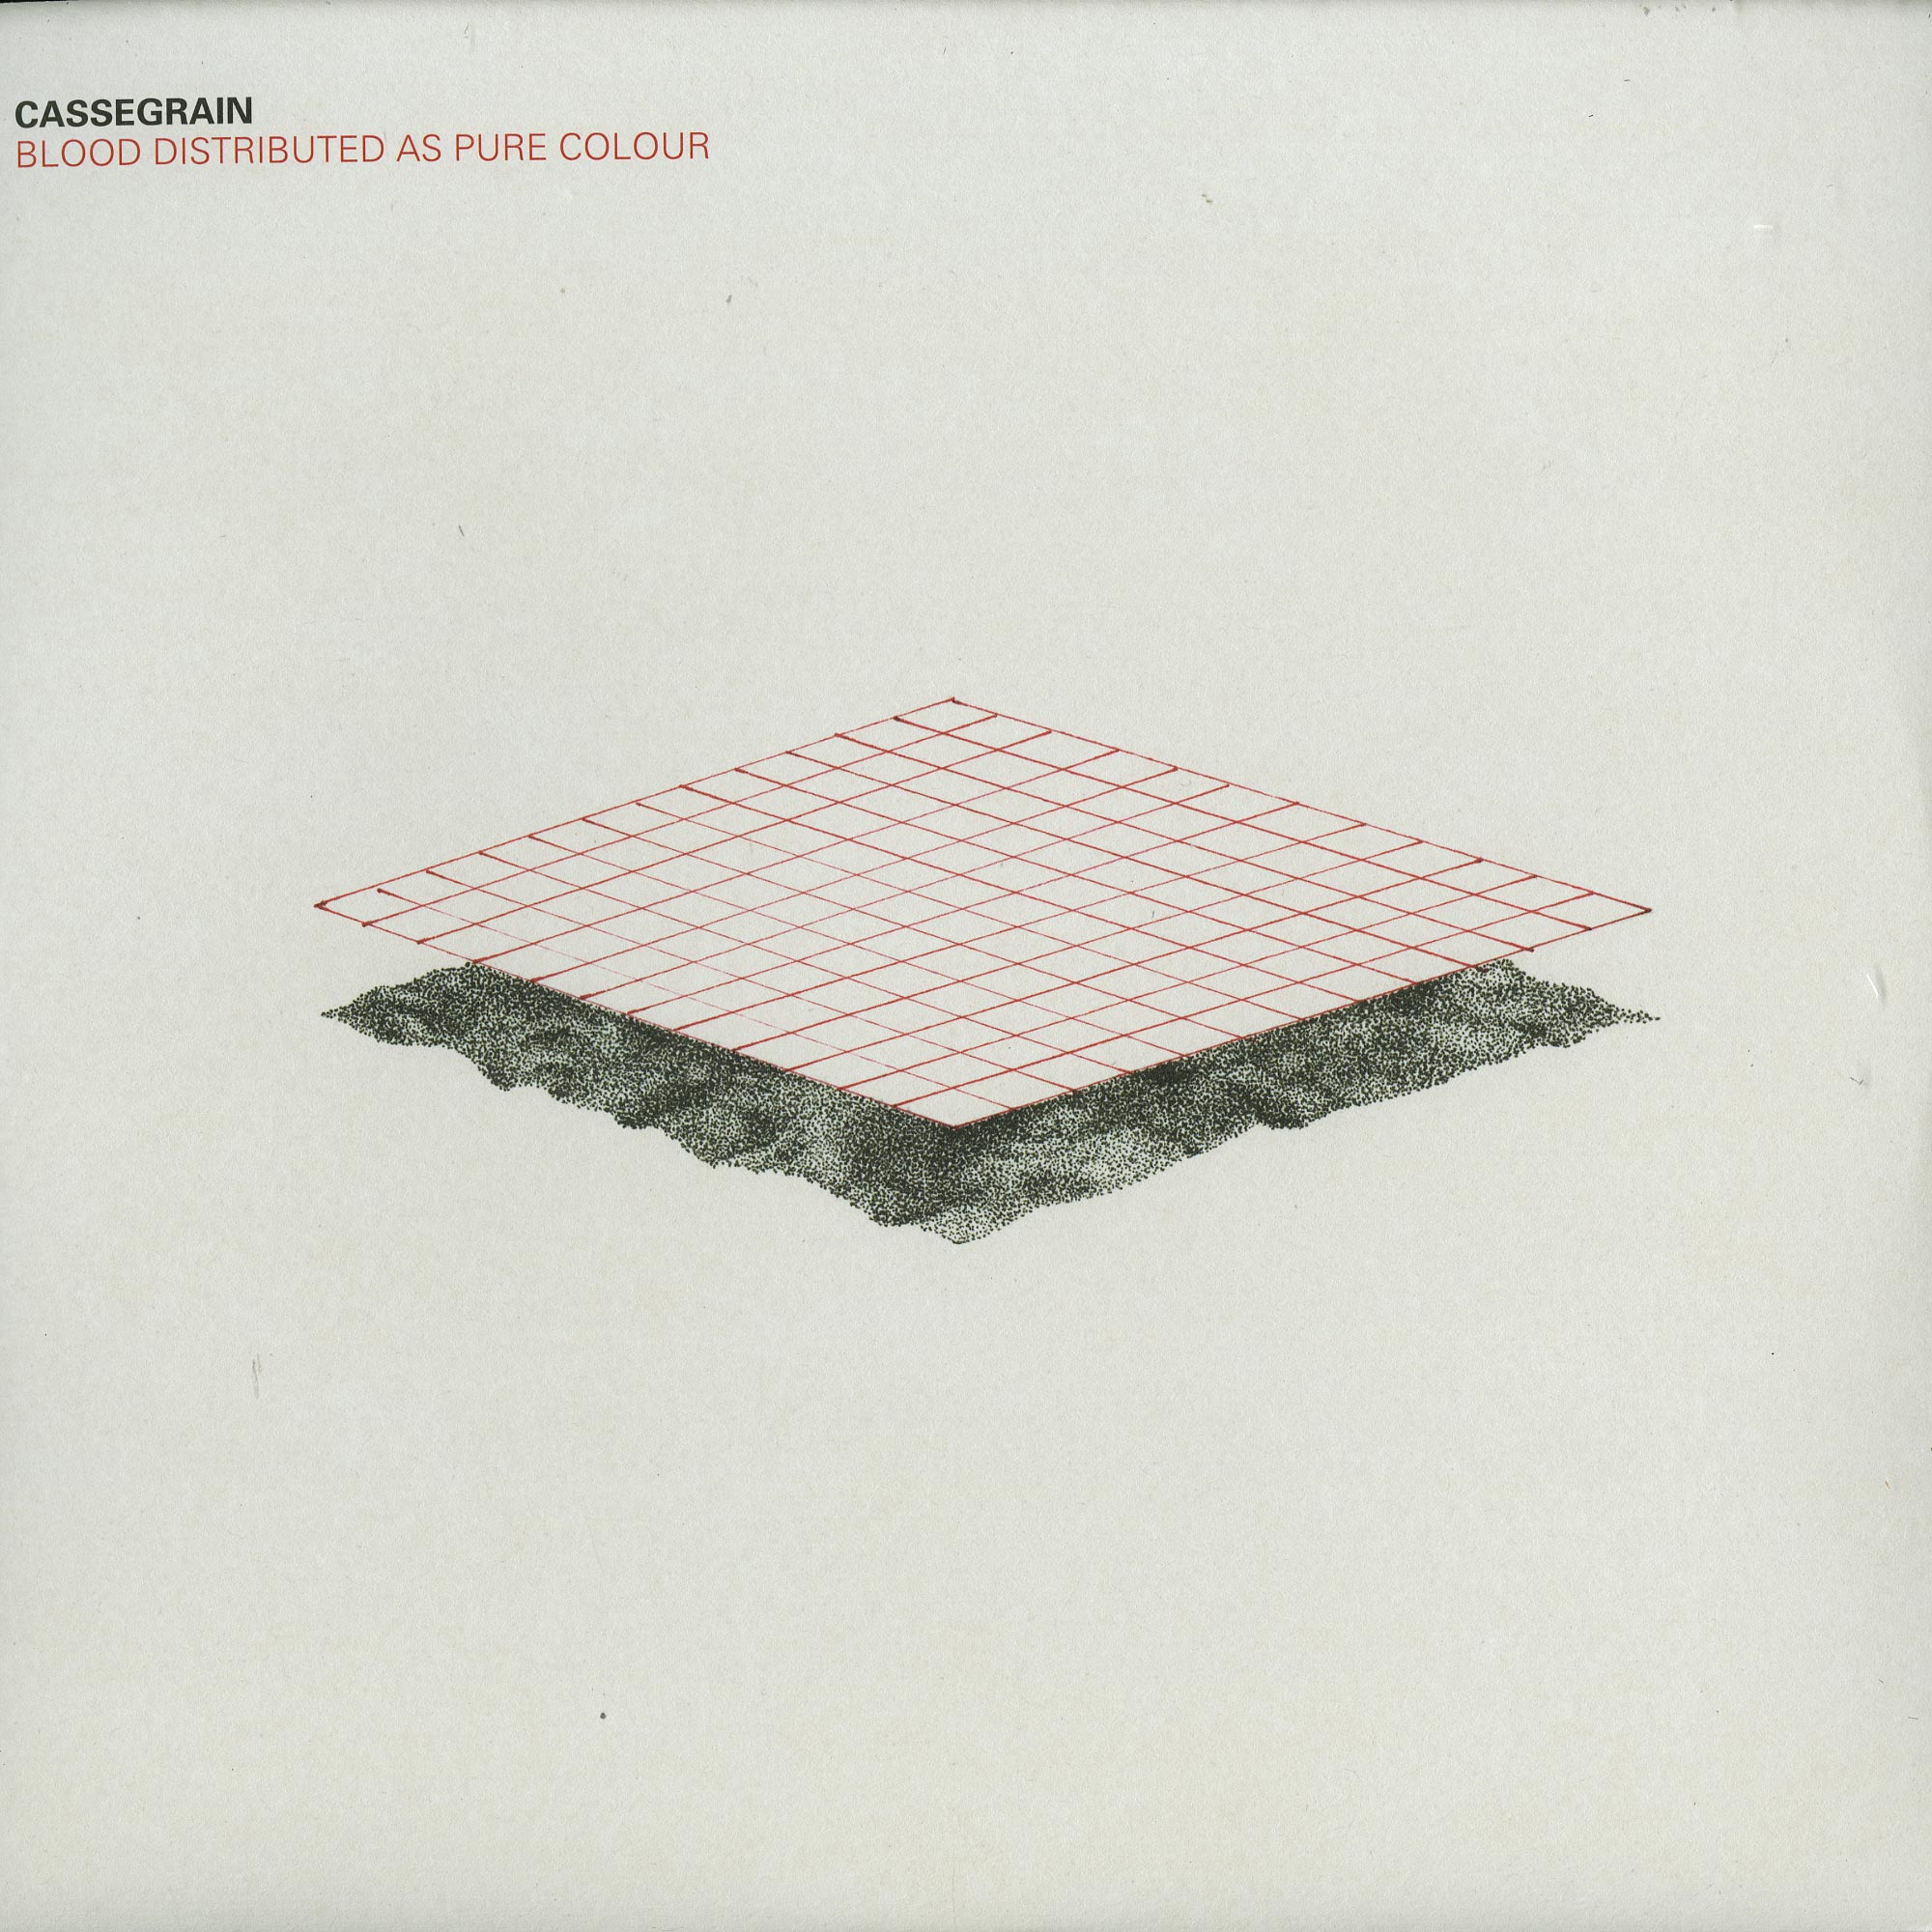 Cassegrain - BLOOD DISTRIBUTED AS PURE COLOUR